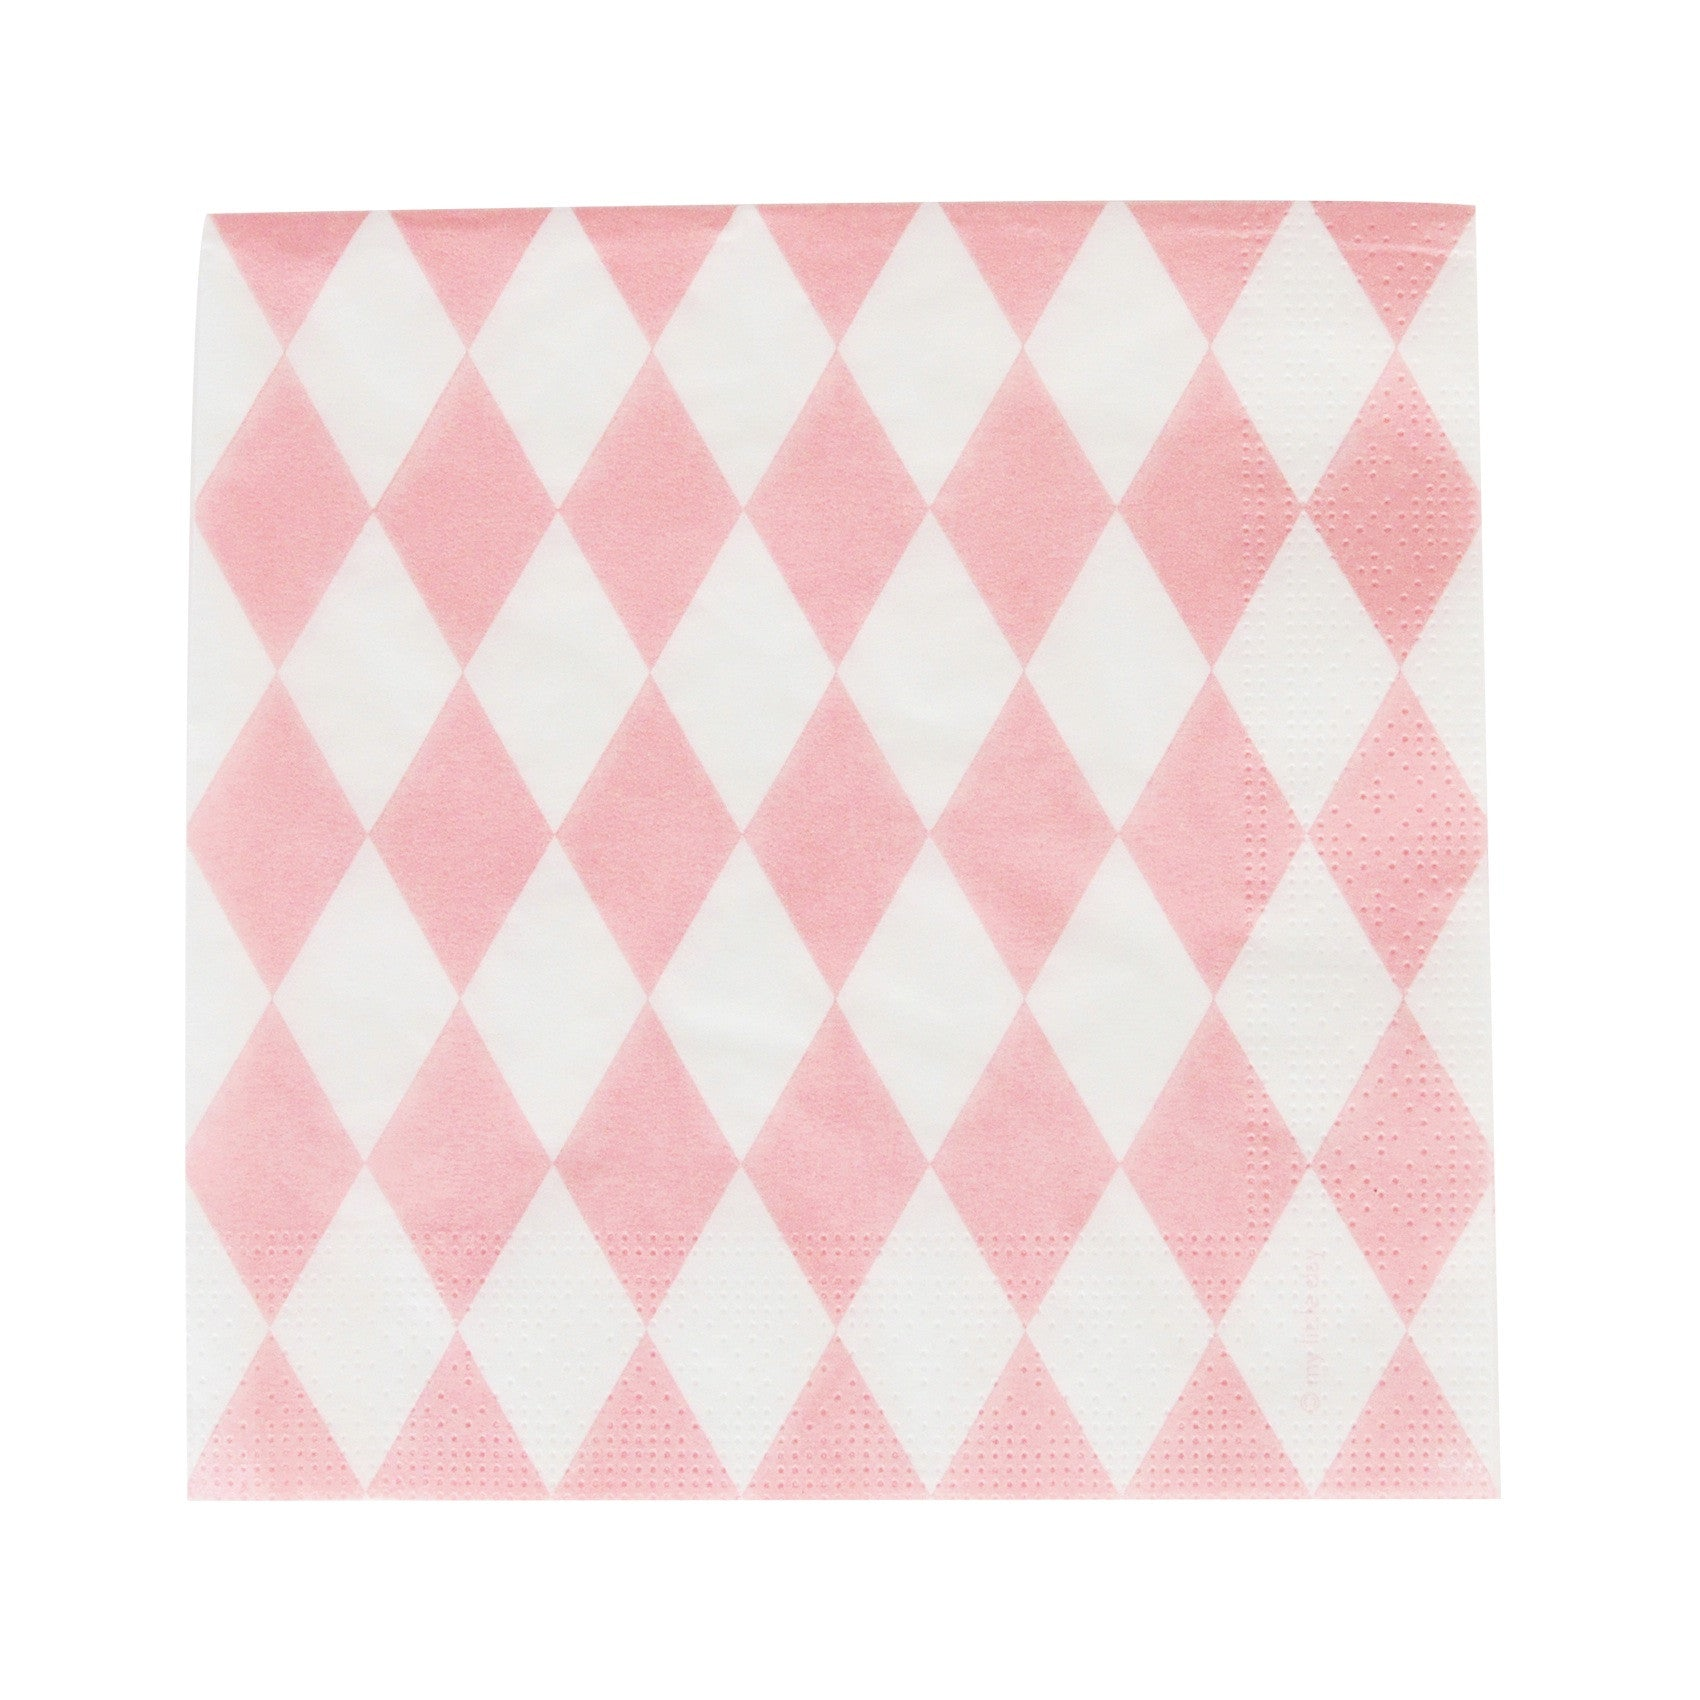 my little day - Paper Napkins - Light Pink Diamonds - How I Wonder.co.uk - 1